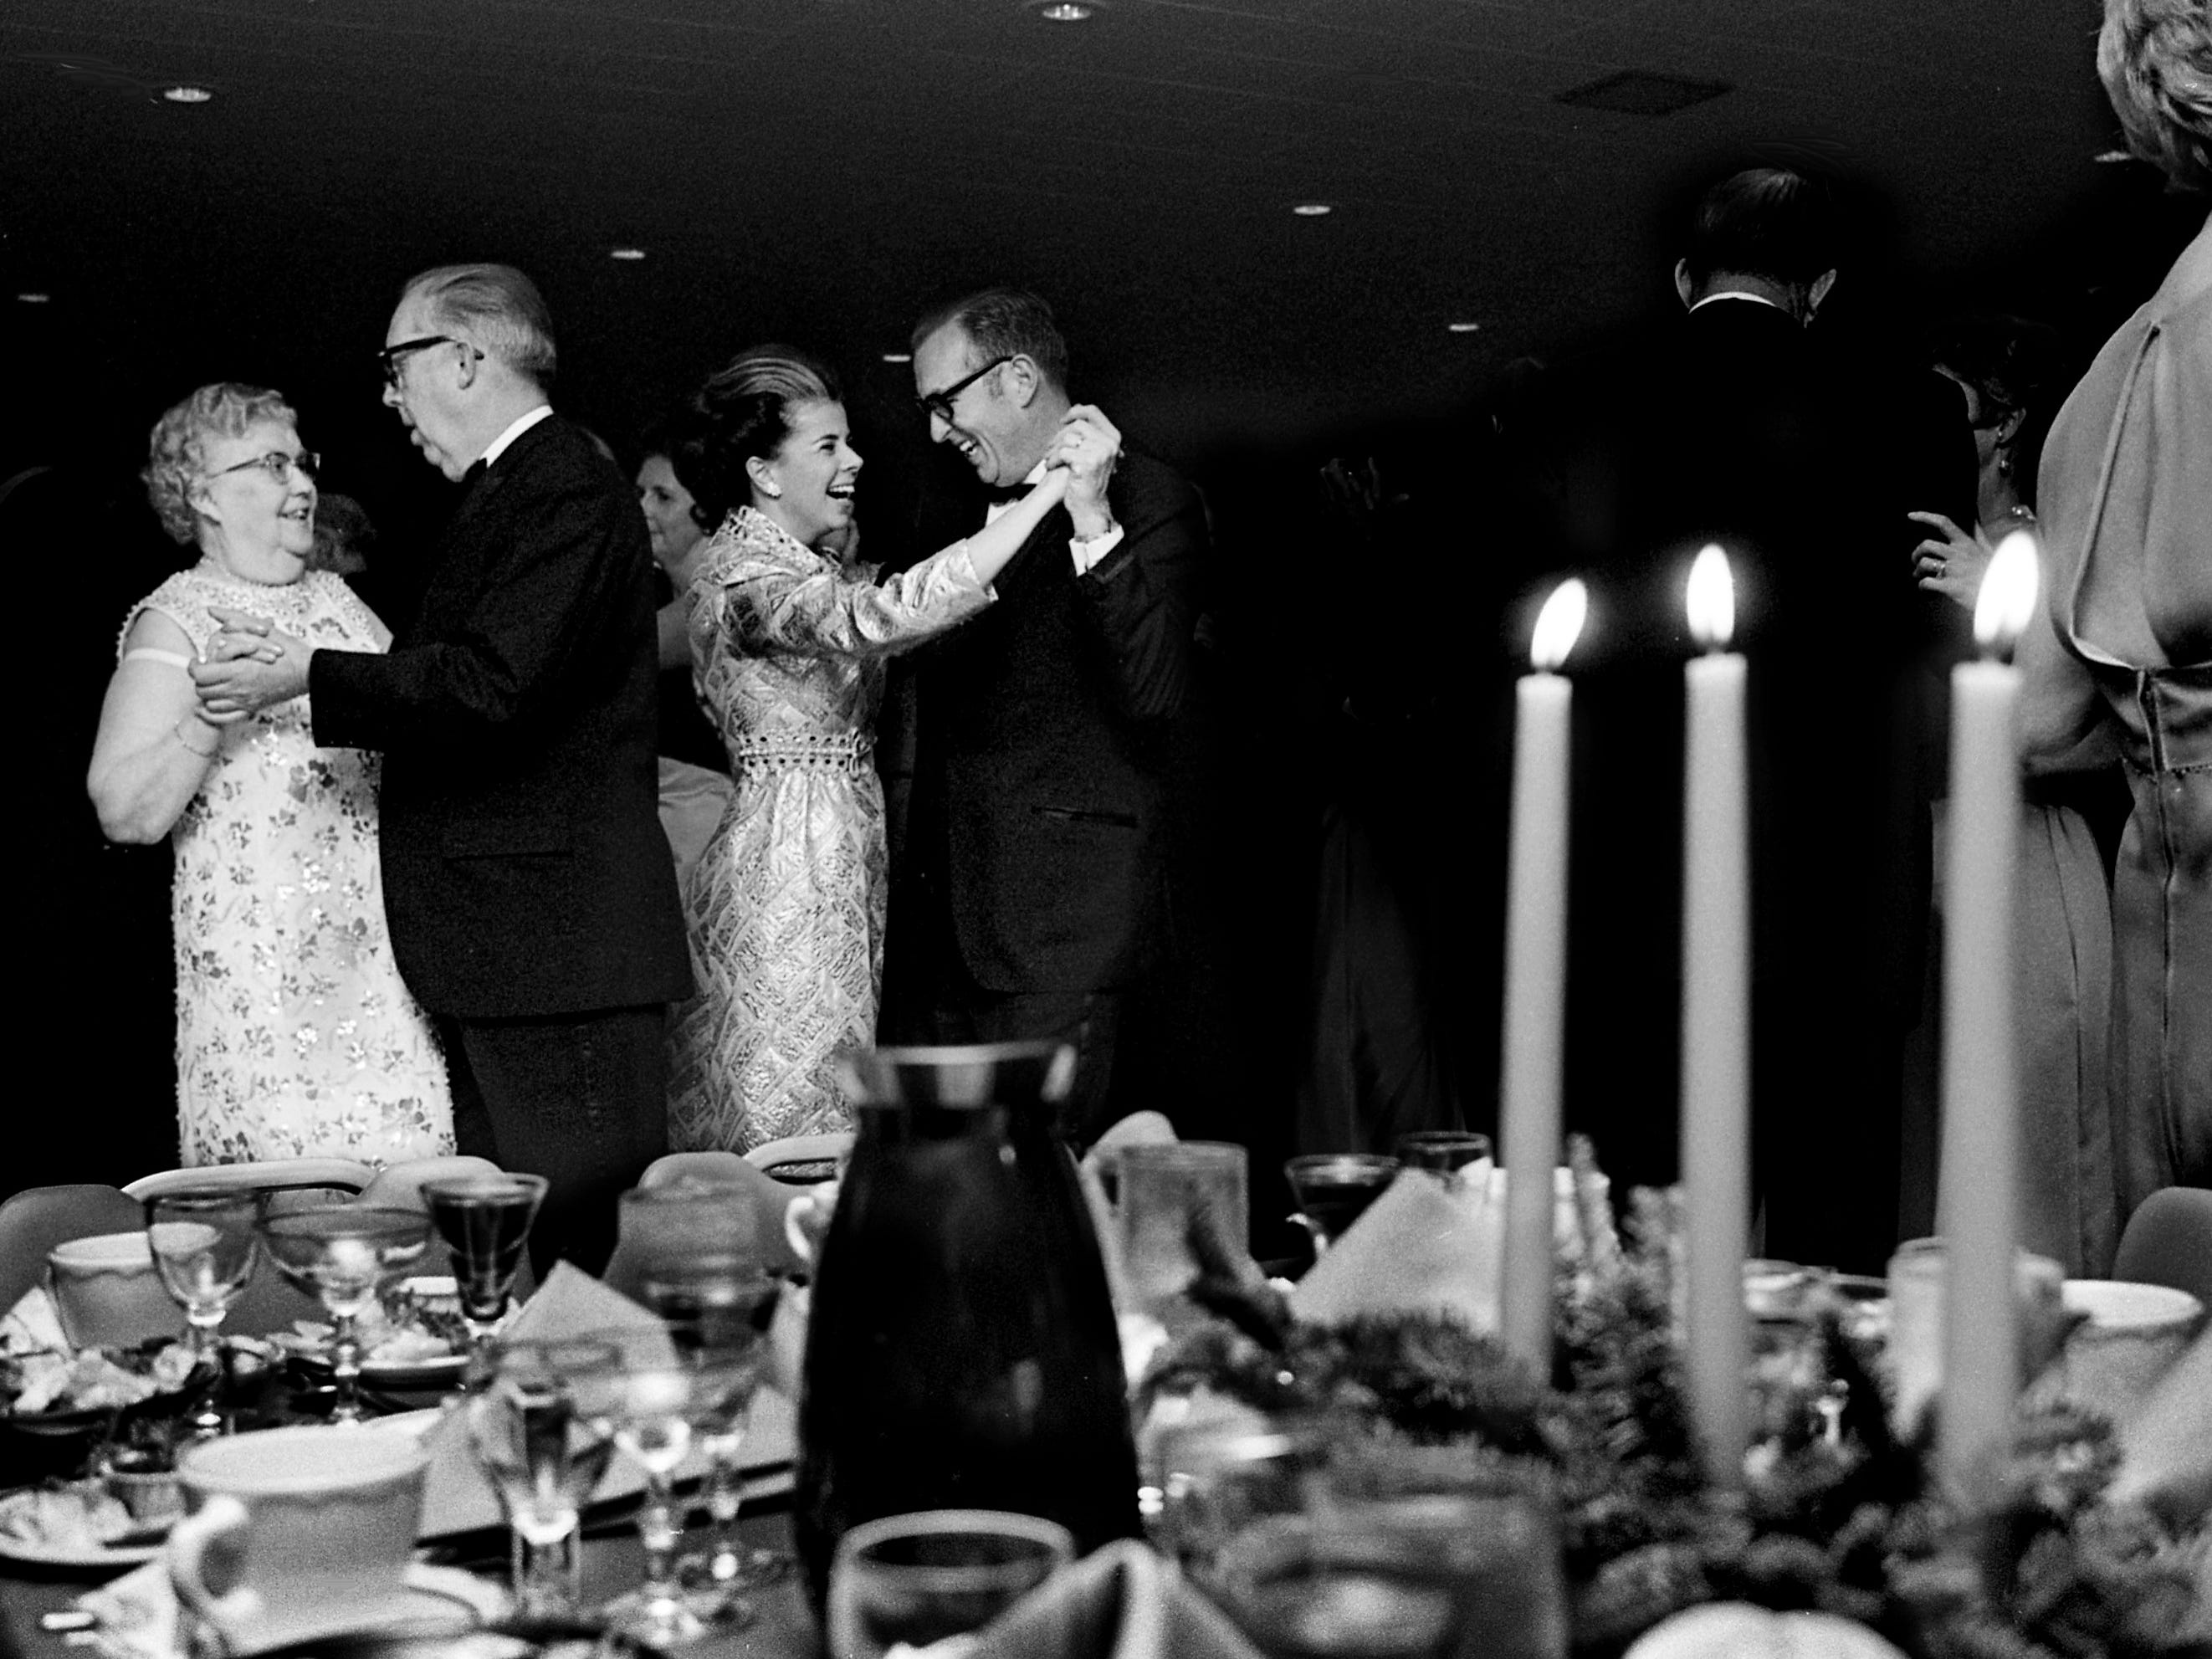 Dancing to the music of Marshall Grant's Palm Beach orchestra are Mrs. John Youmans, left, John DeWitt, and Mrs. and Dr. Irwin Eskind during the new Sheraton-Nashville's Opening Ball on Dec. 13, 1968.